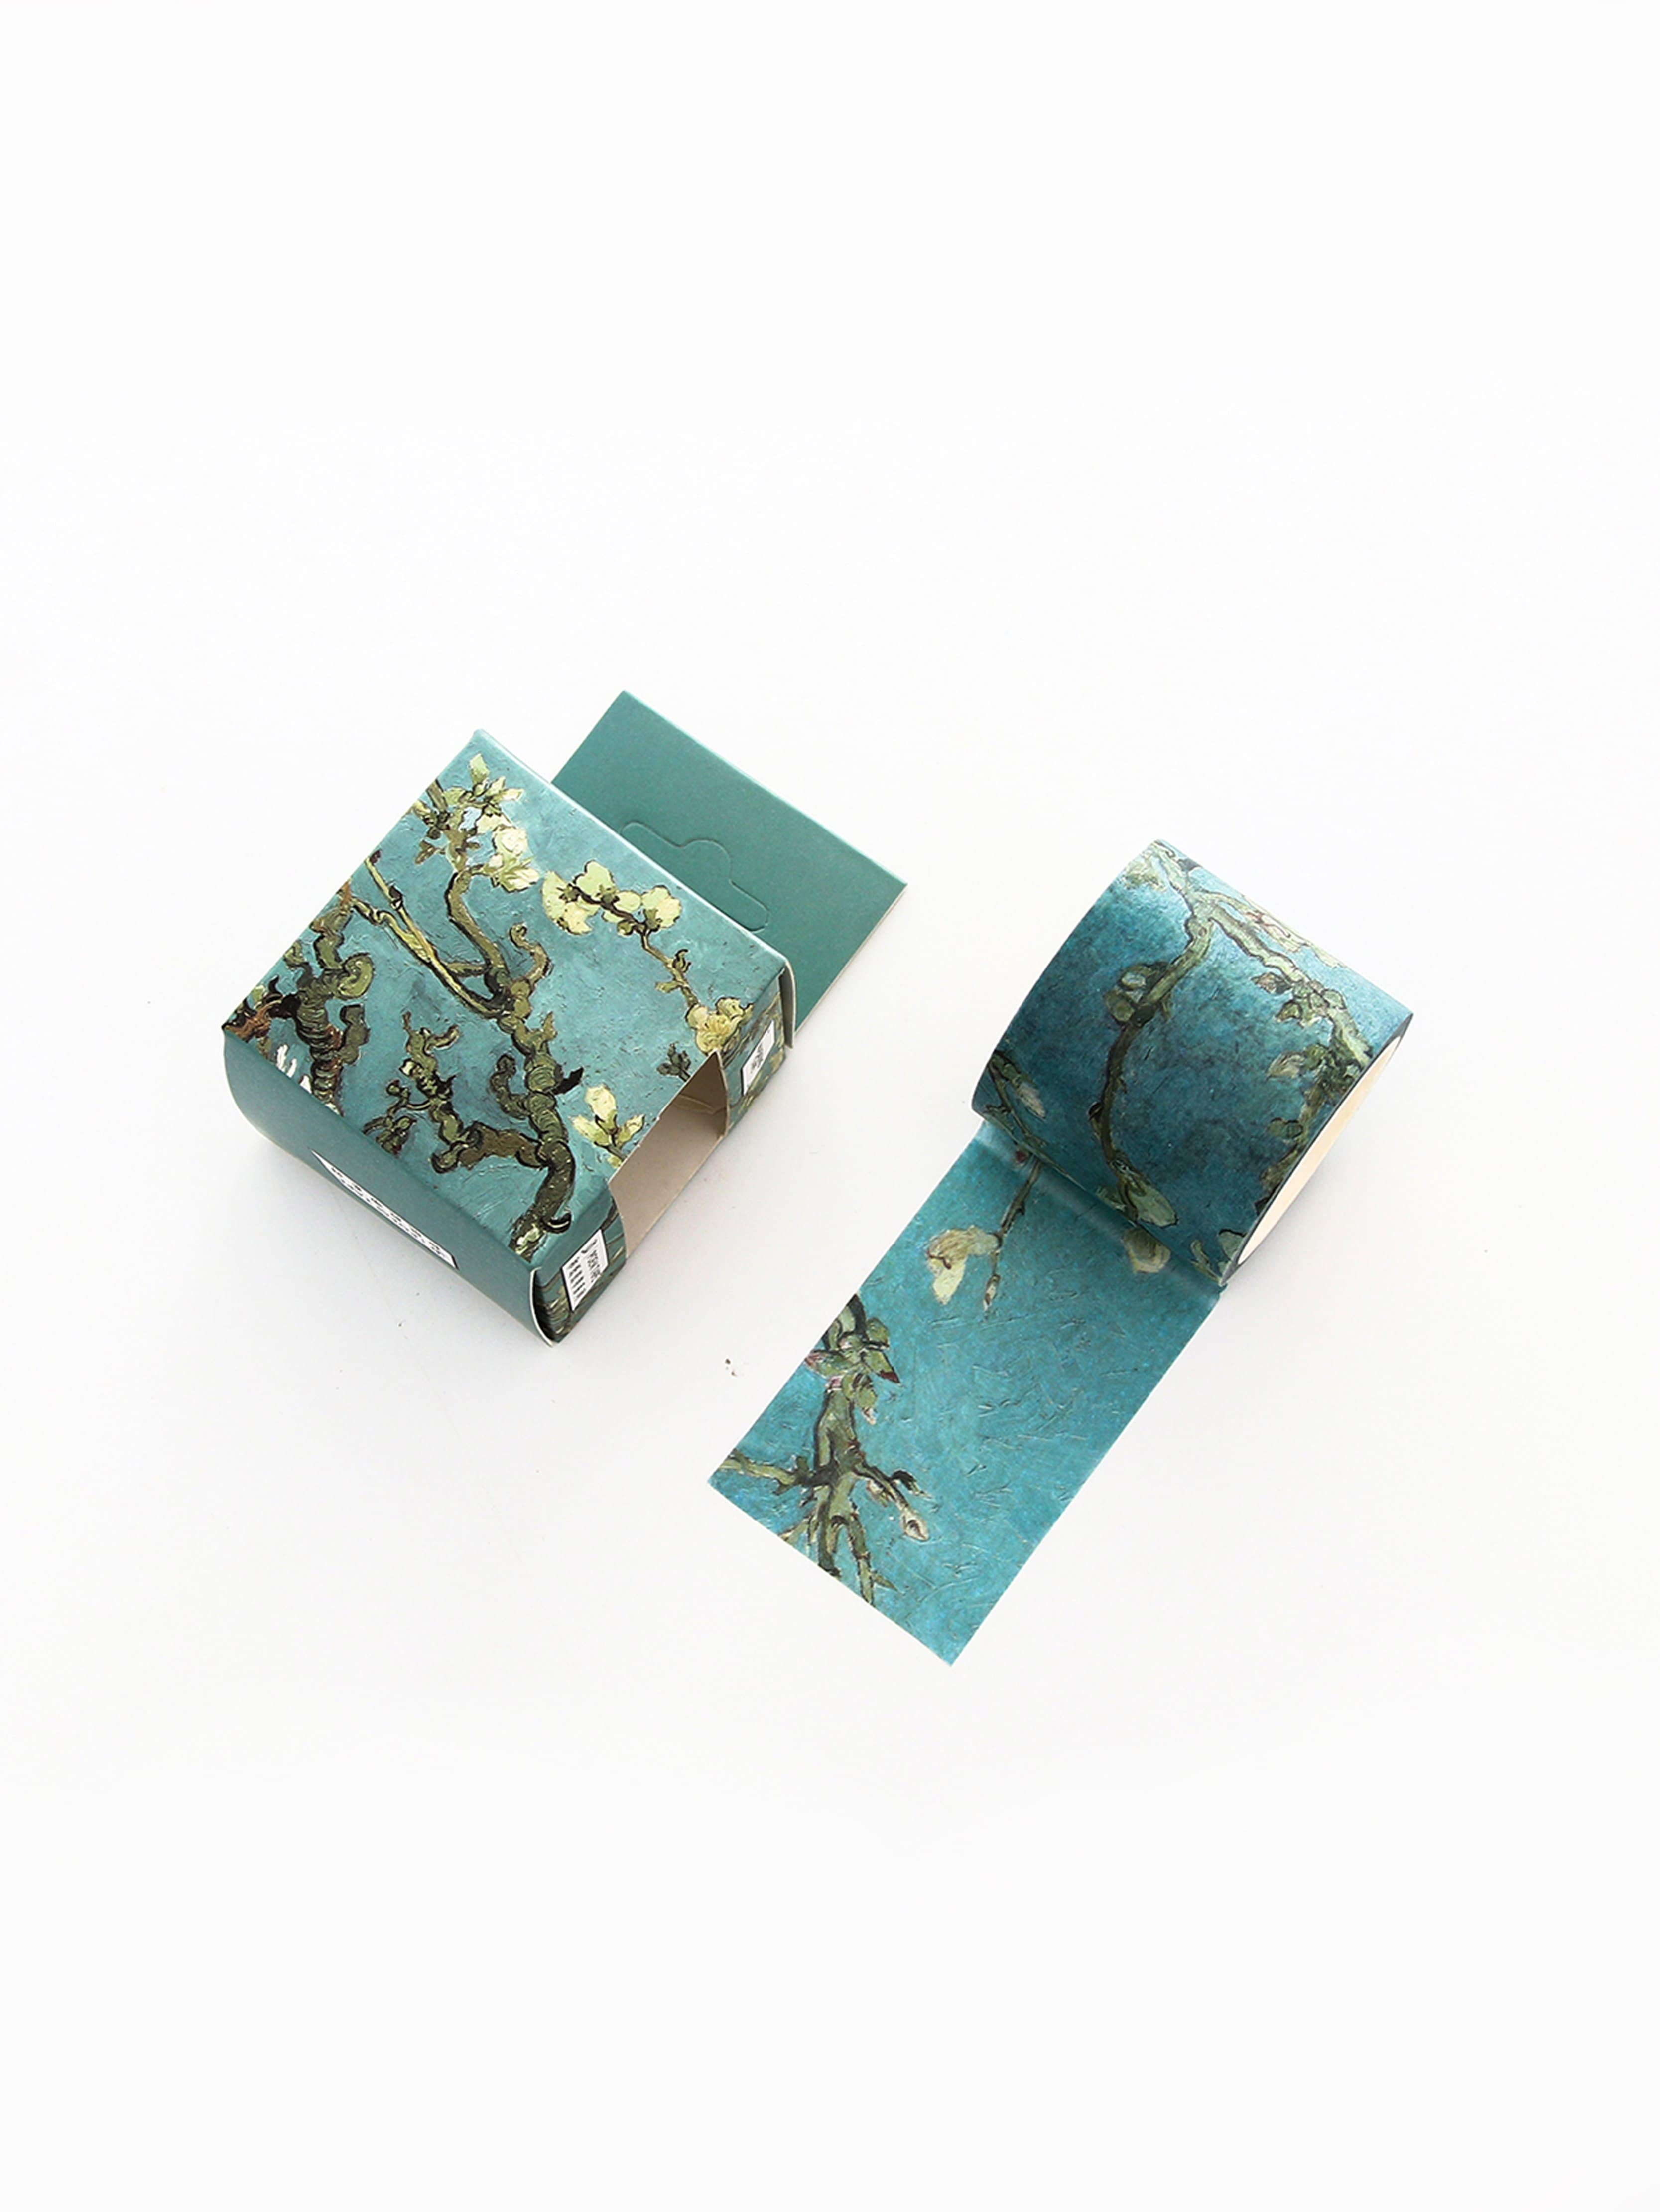 Flower Wide Masking Tape 1 5cm wide various mushroom collections washi tape diy scrapbooking sticker label masking tape school office supply